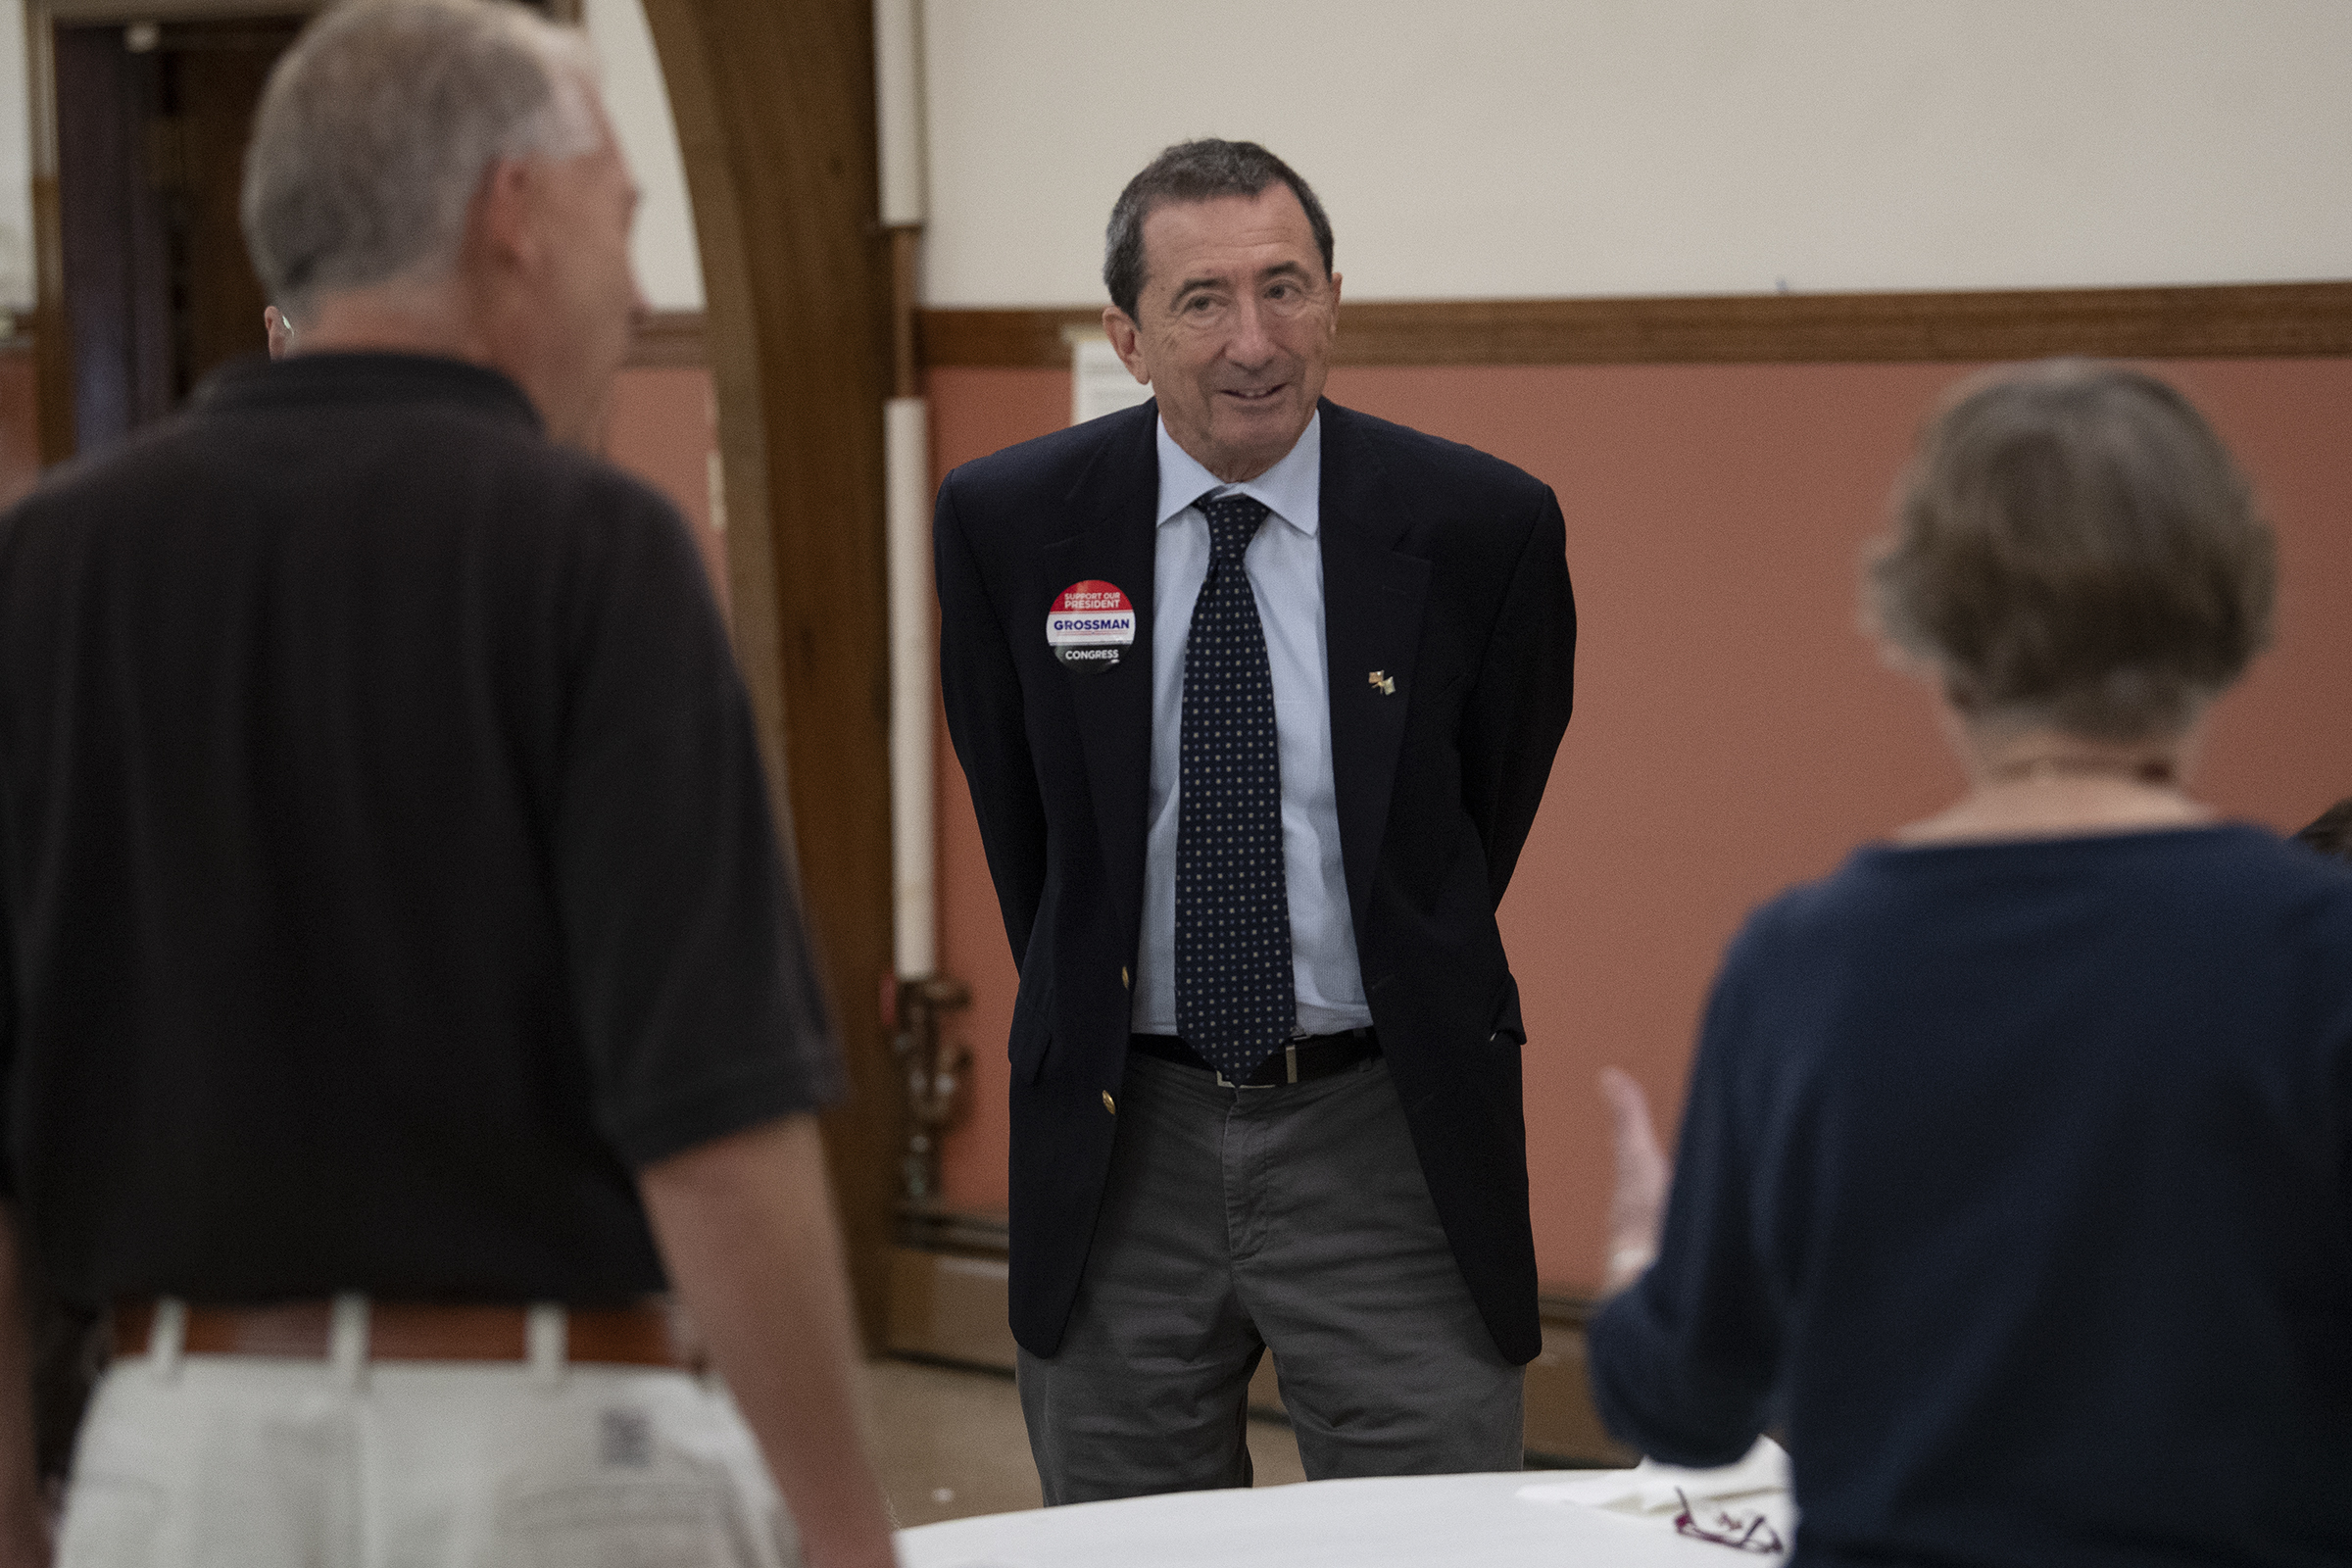 New Jersey 2d district Congressional Candidate Seth Grossman, center, present his platform to Somers Point resident at the Christ Episcopal Church in Somers Point, N.J. Thursday, October 11, 2018. JOSE F. MORENO / Staff Photographer